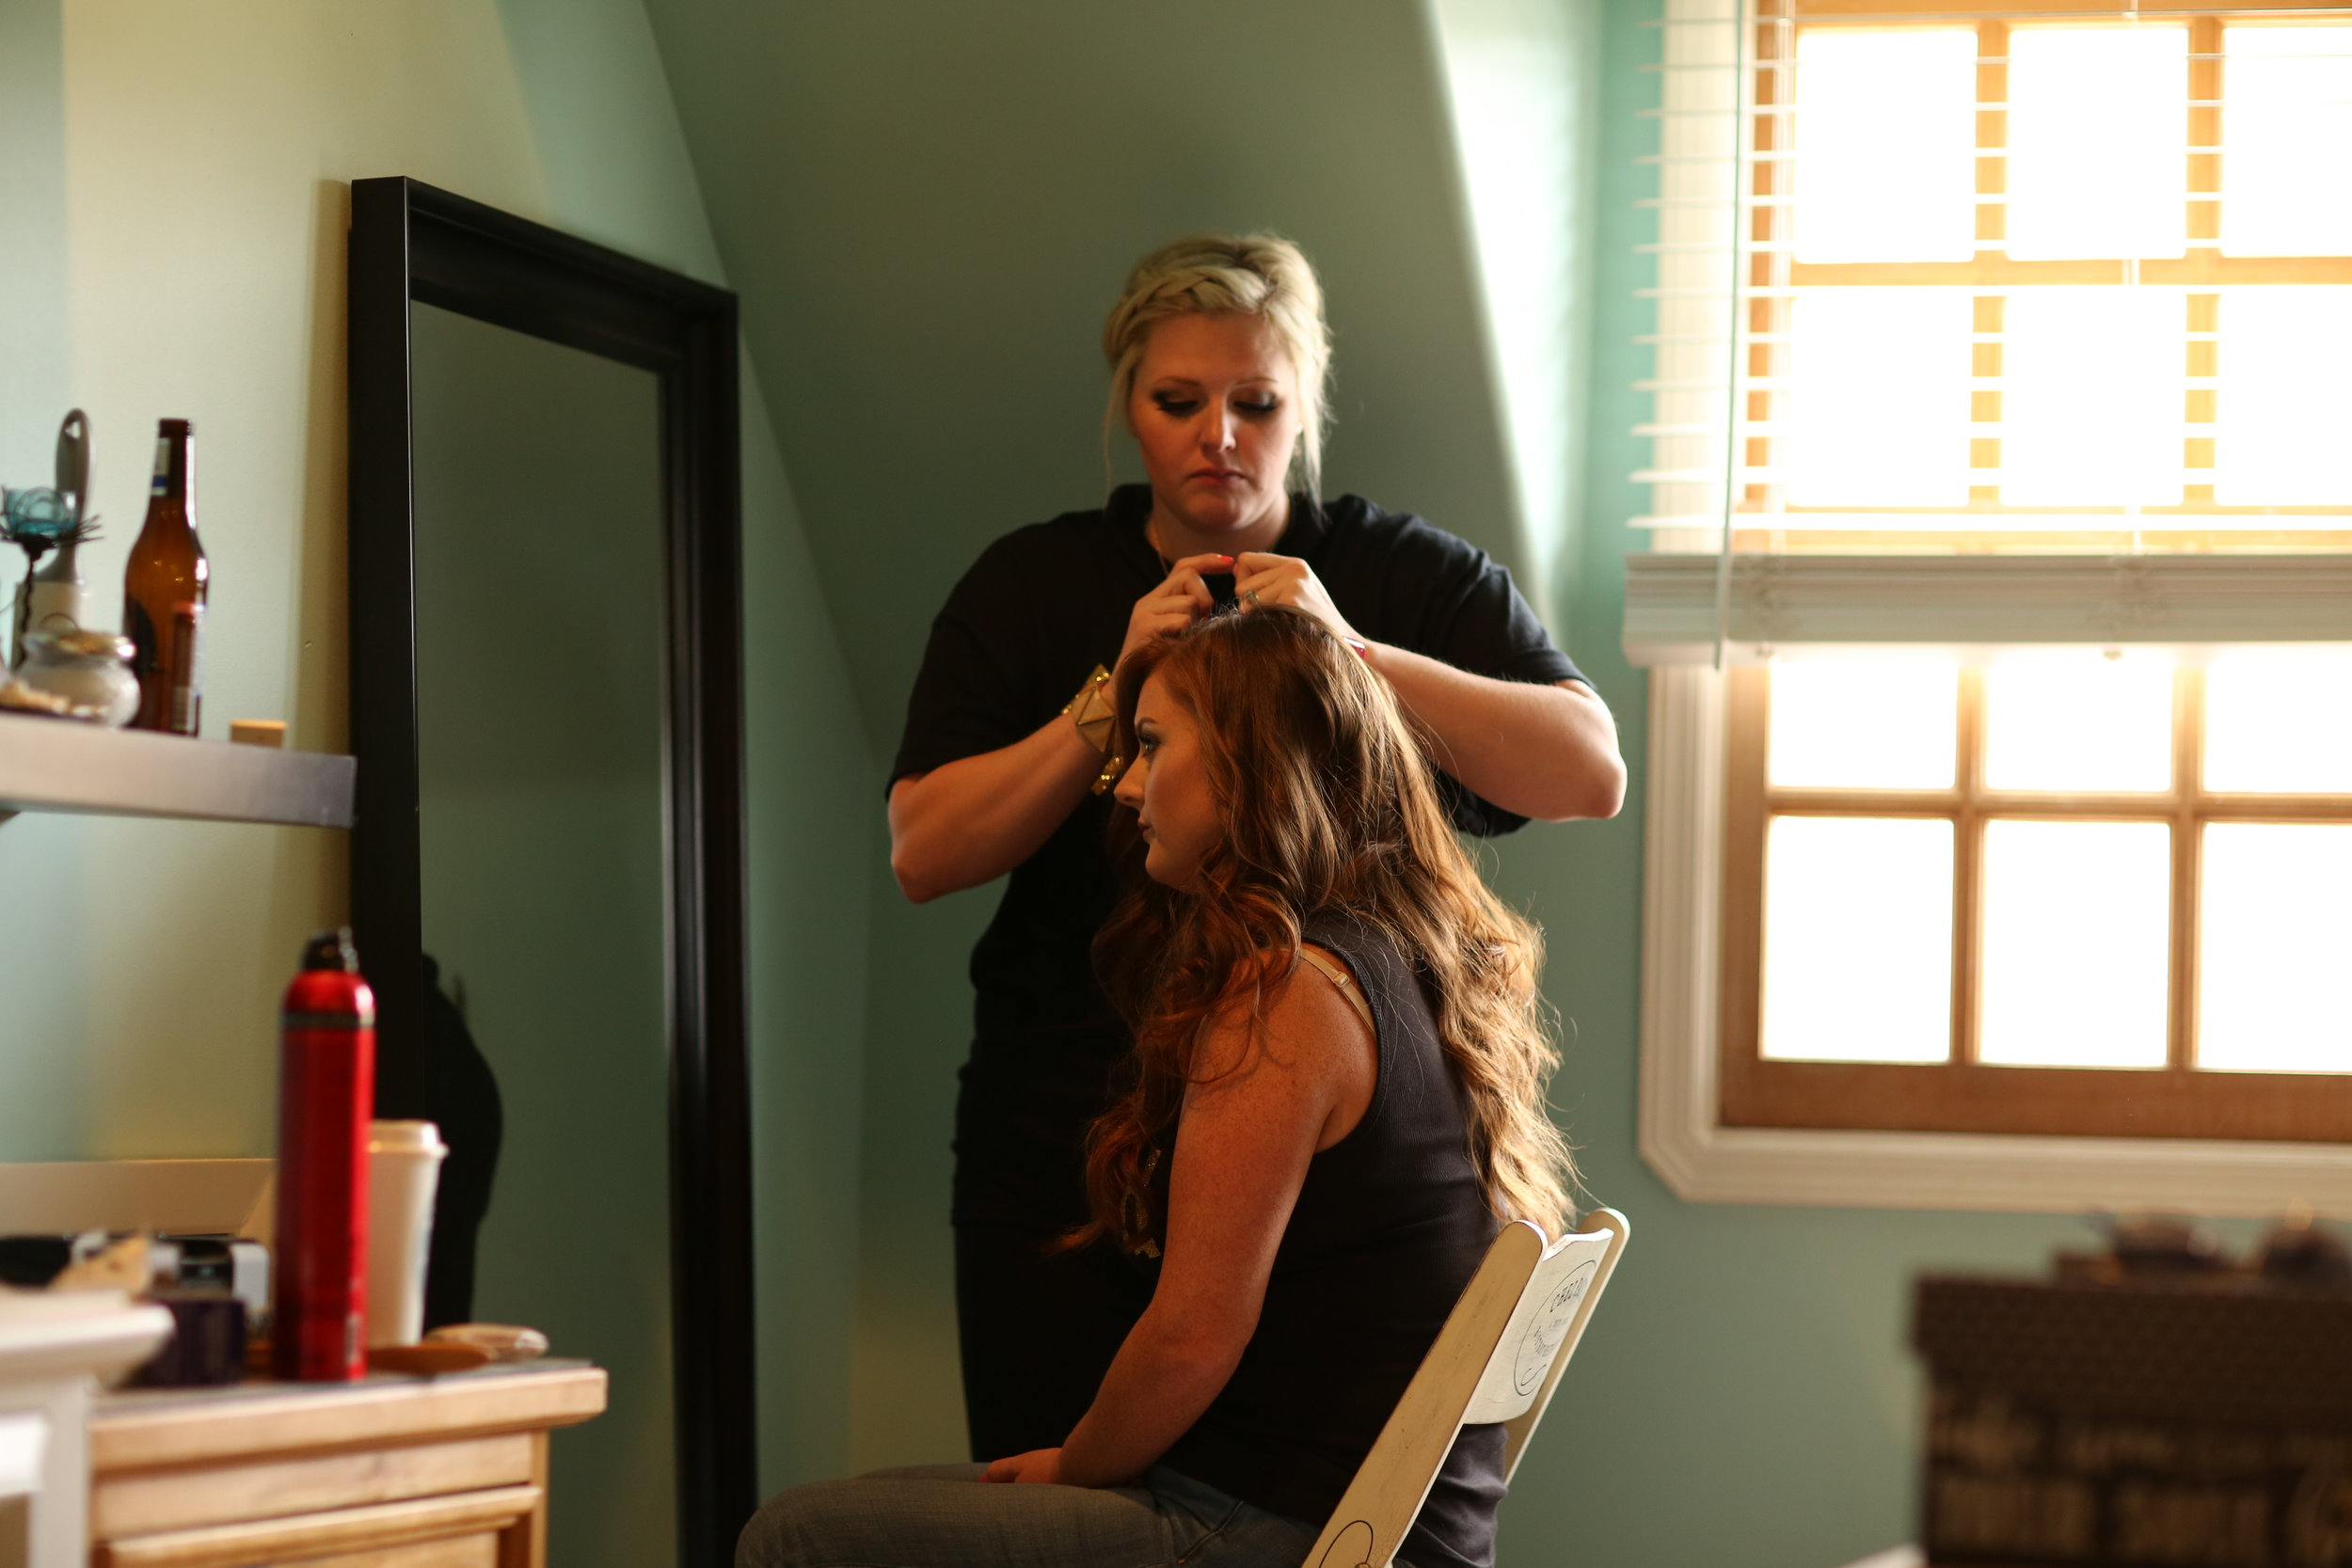 Professional hair dresser working on styling a French braid hairstyle for the bridesmaid of the wedding party in Murrieta California at Chateau Adare.